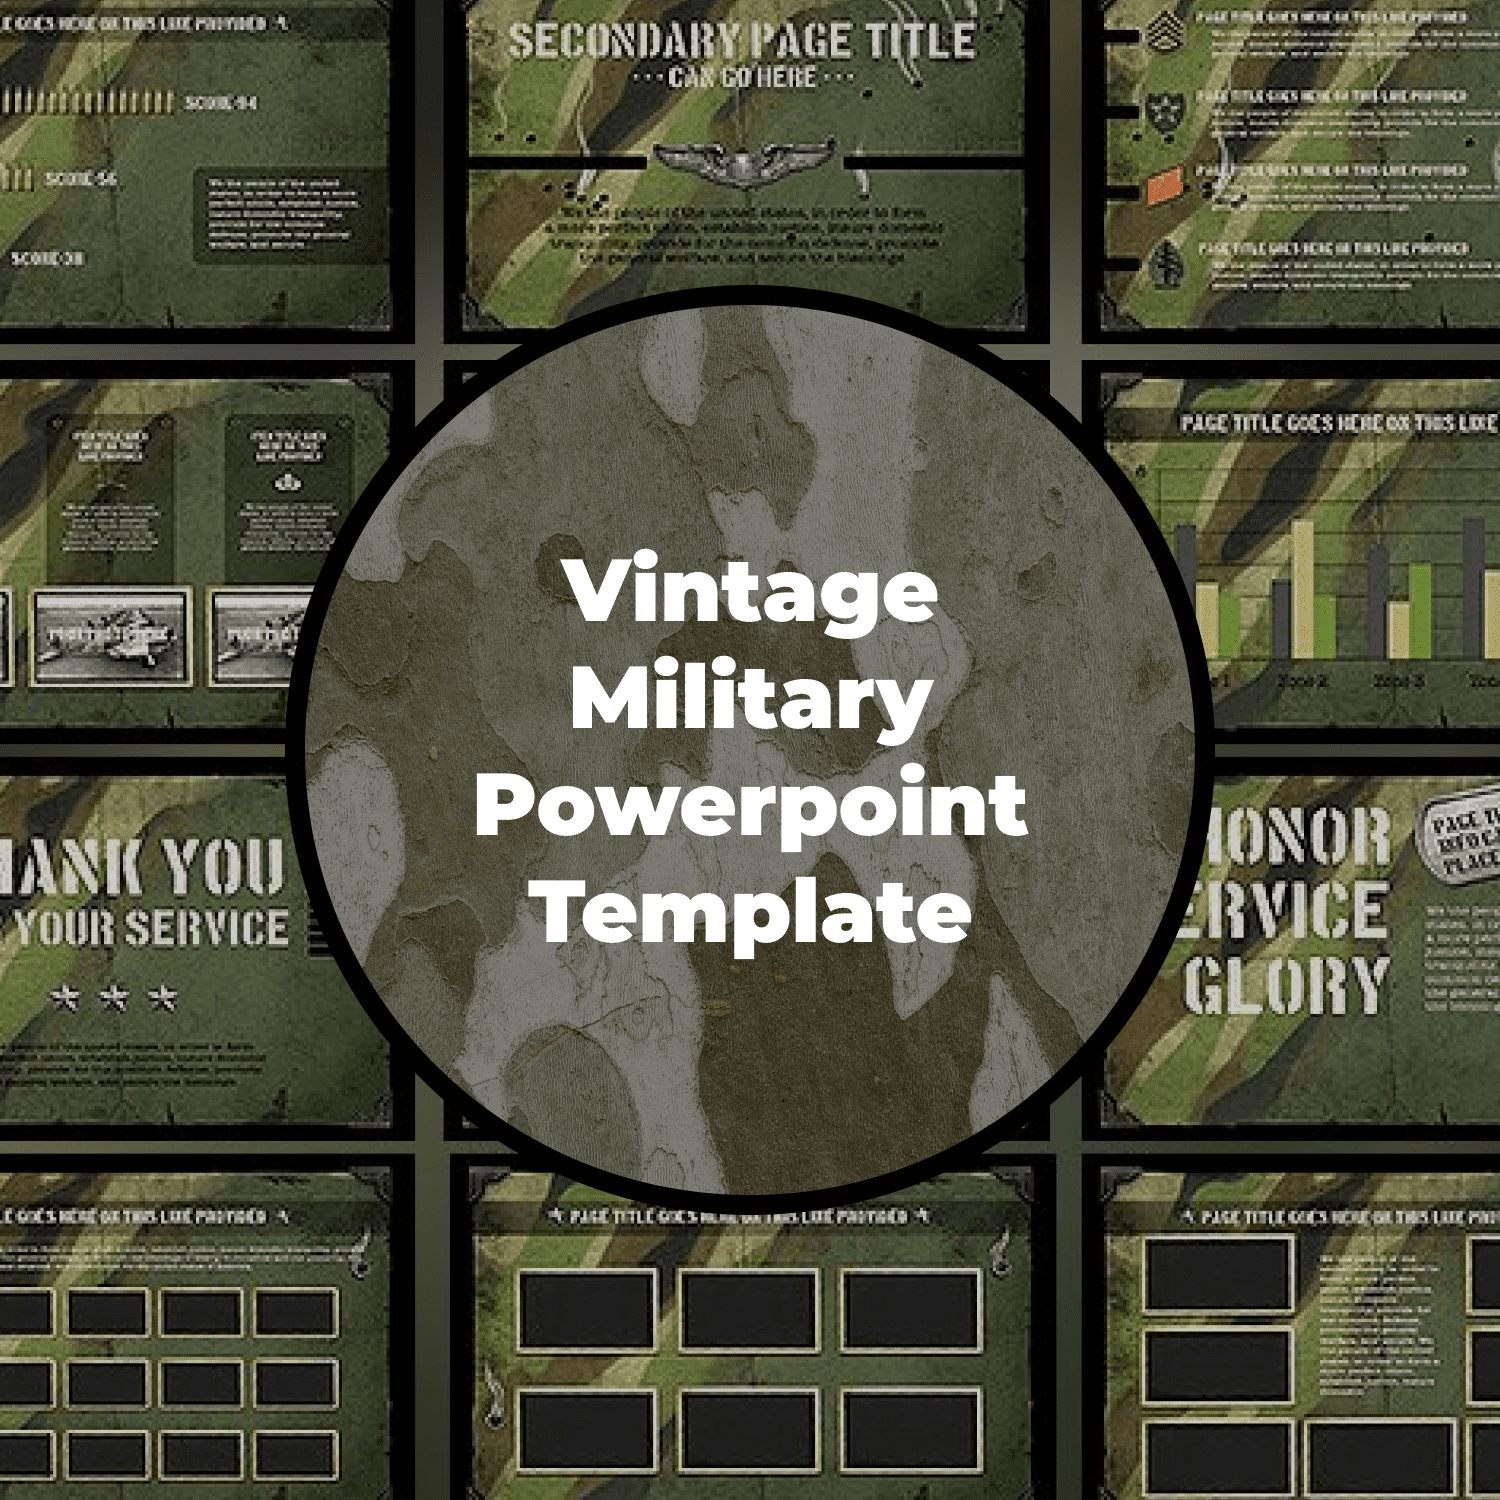 Vintage Military Powerpoint Template main cover.